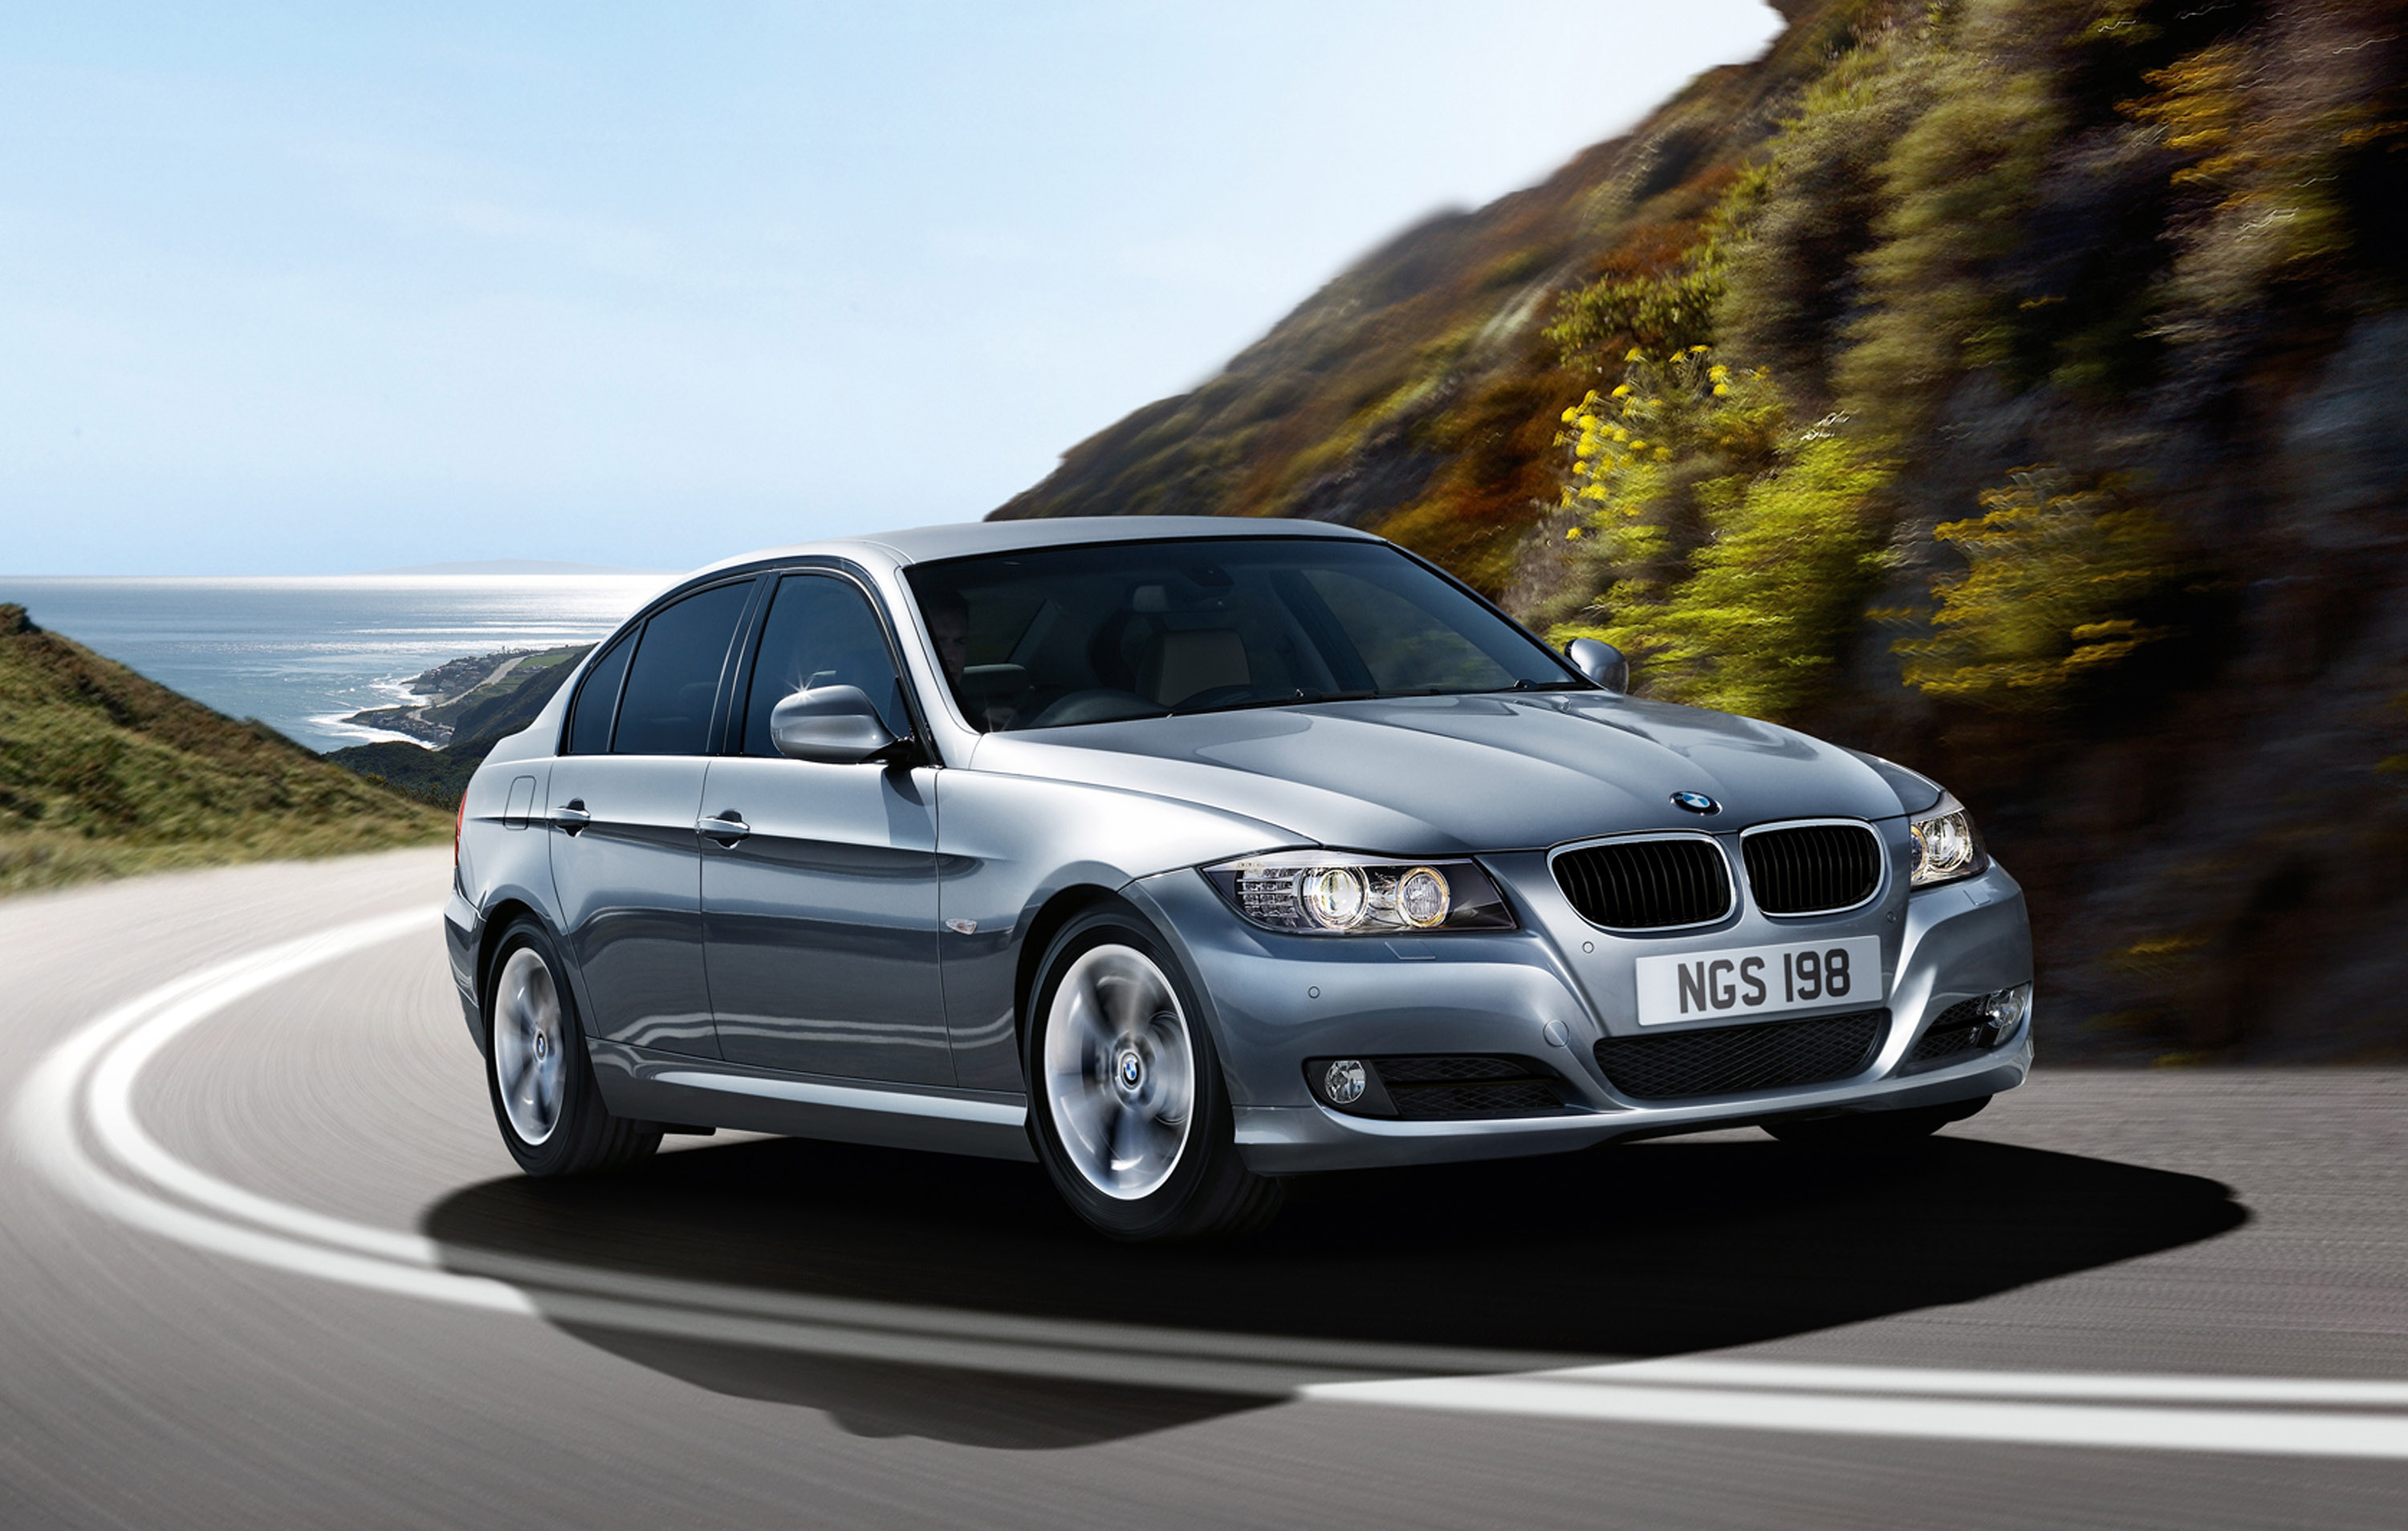 Images of bmw 320d efficientdynamics edition e90 2009 11 -  11 Of 12 Bmw 320d Efficientdynamics Edition 12 Of 12